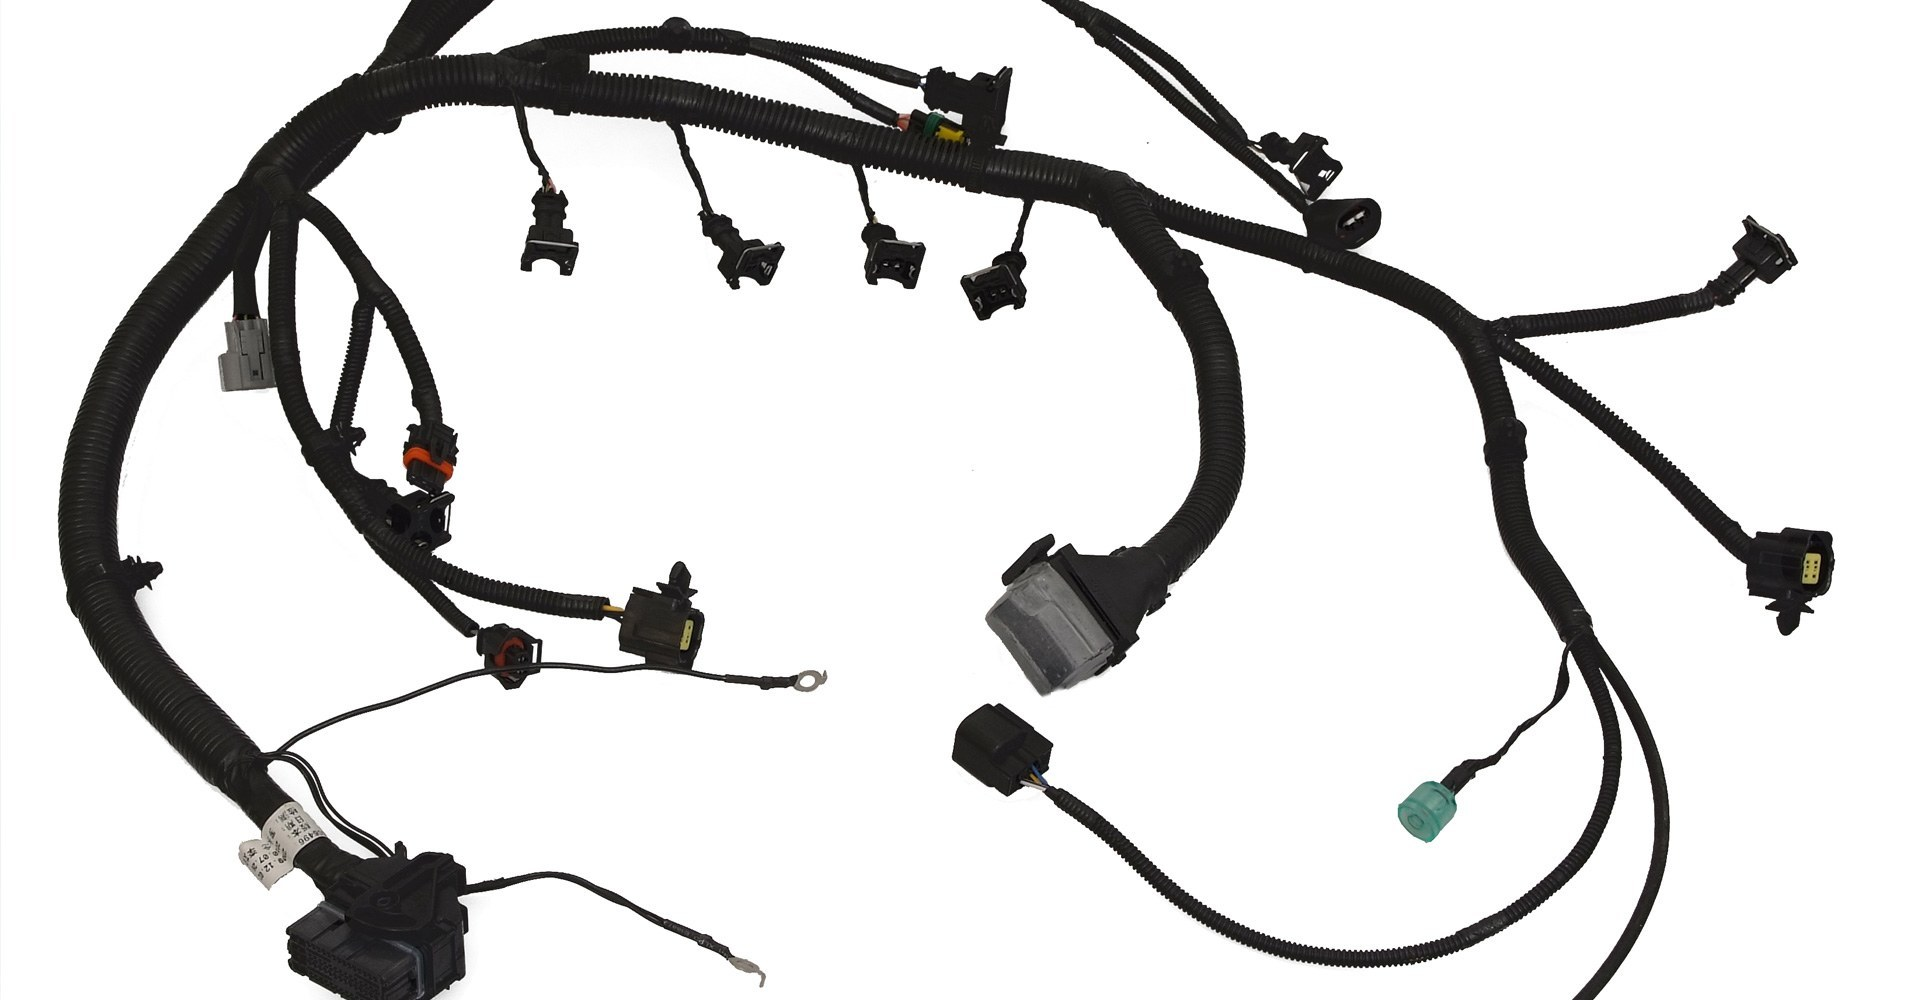 automotive wire harness products lorom rh lorom com automotive wiring harness manufacturers in chennai automotive wiring harness manufacturers in china